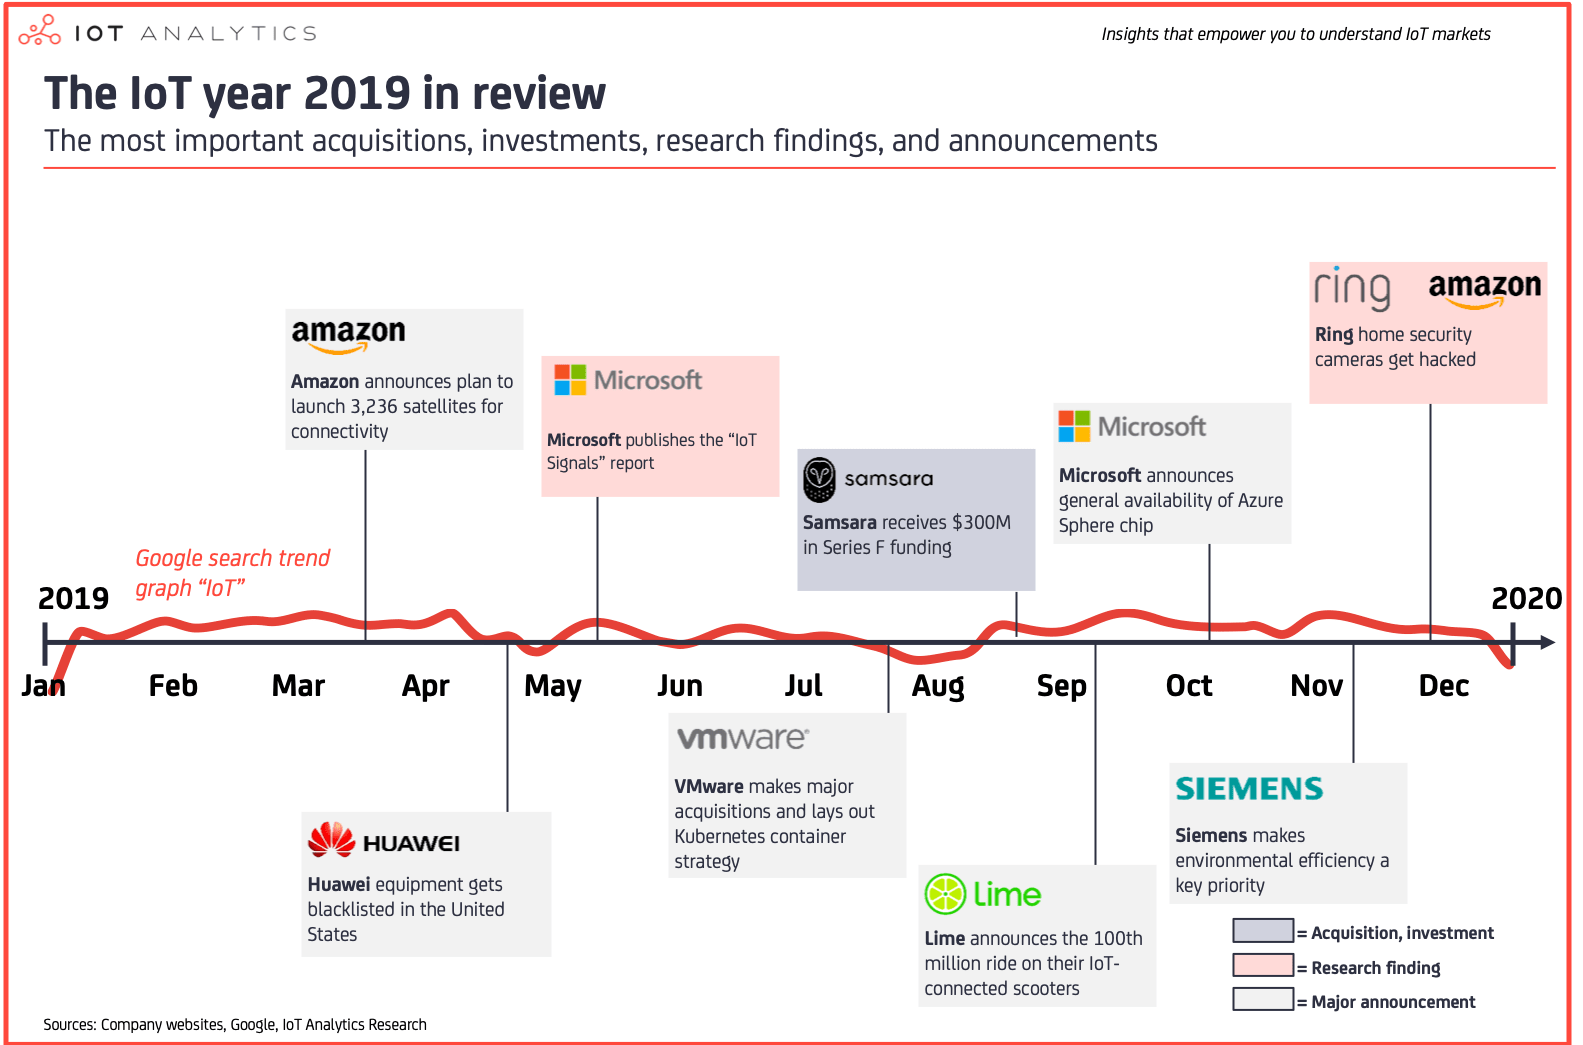 IoT 2019 in review